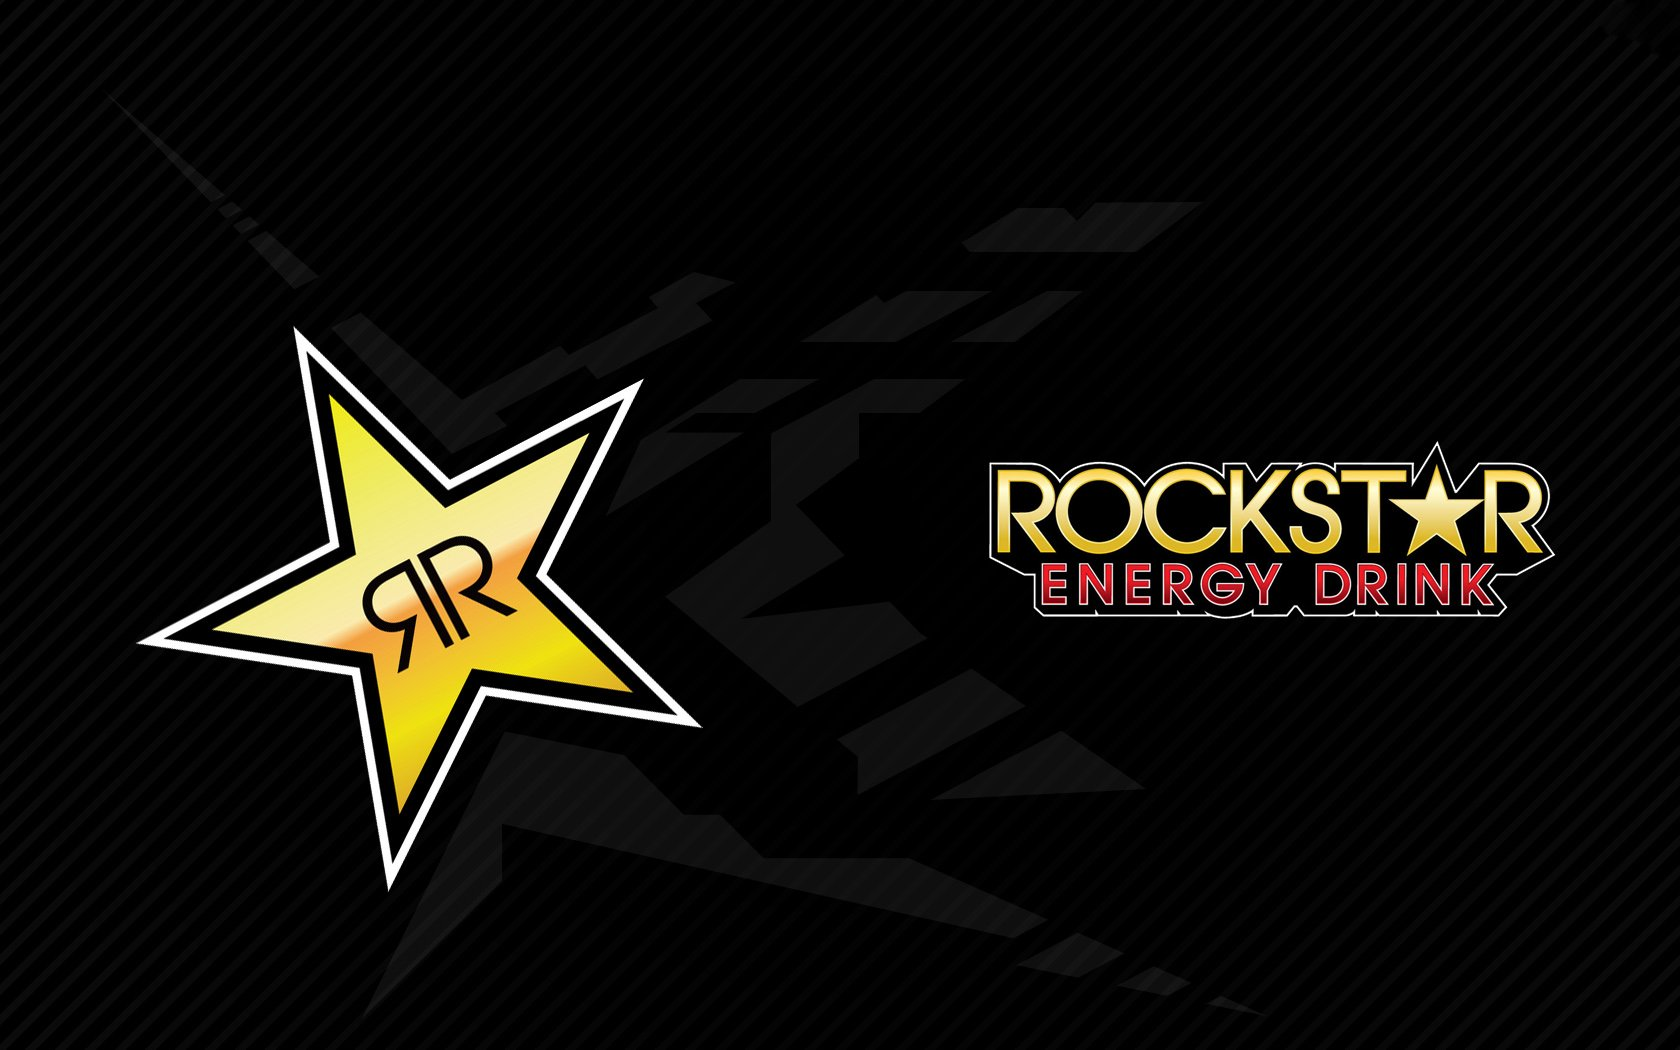 RockStar wallpapers and images   wallpapers pictures photos 1680x1050